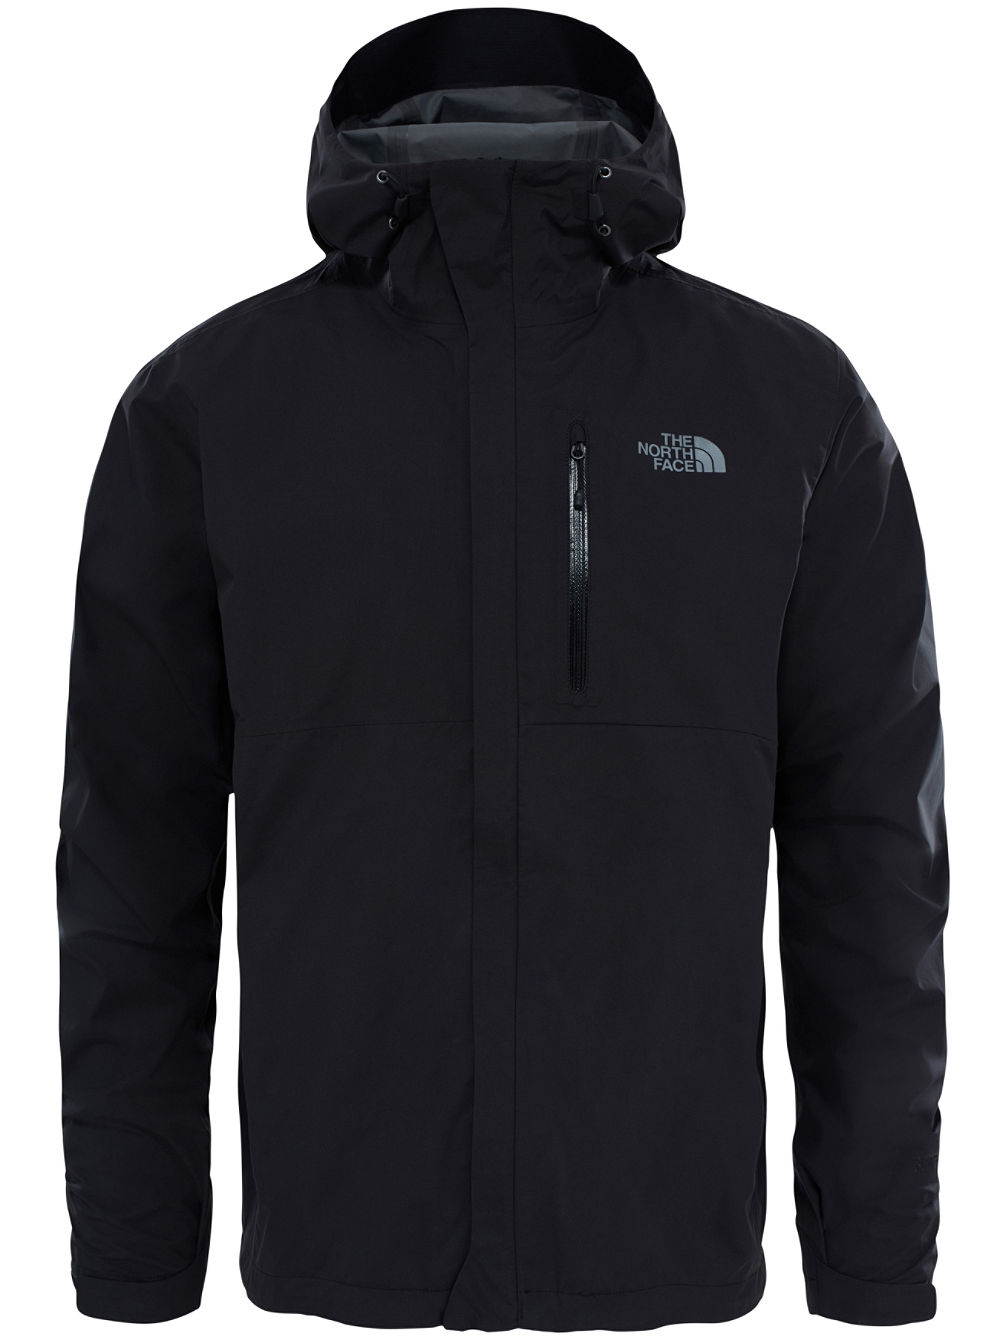 Dryzzle Outdoor Jacket